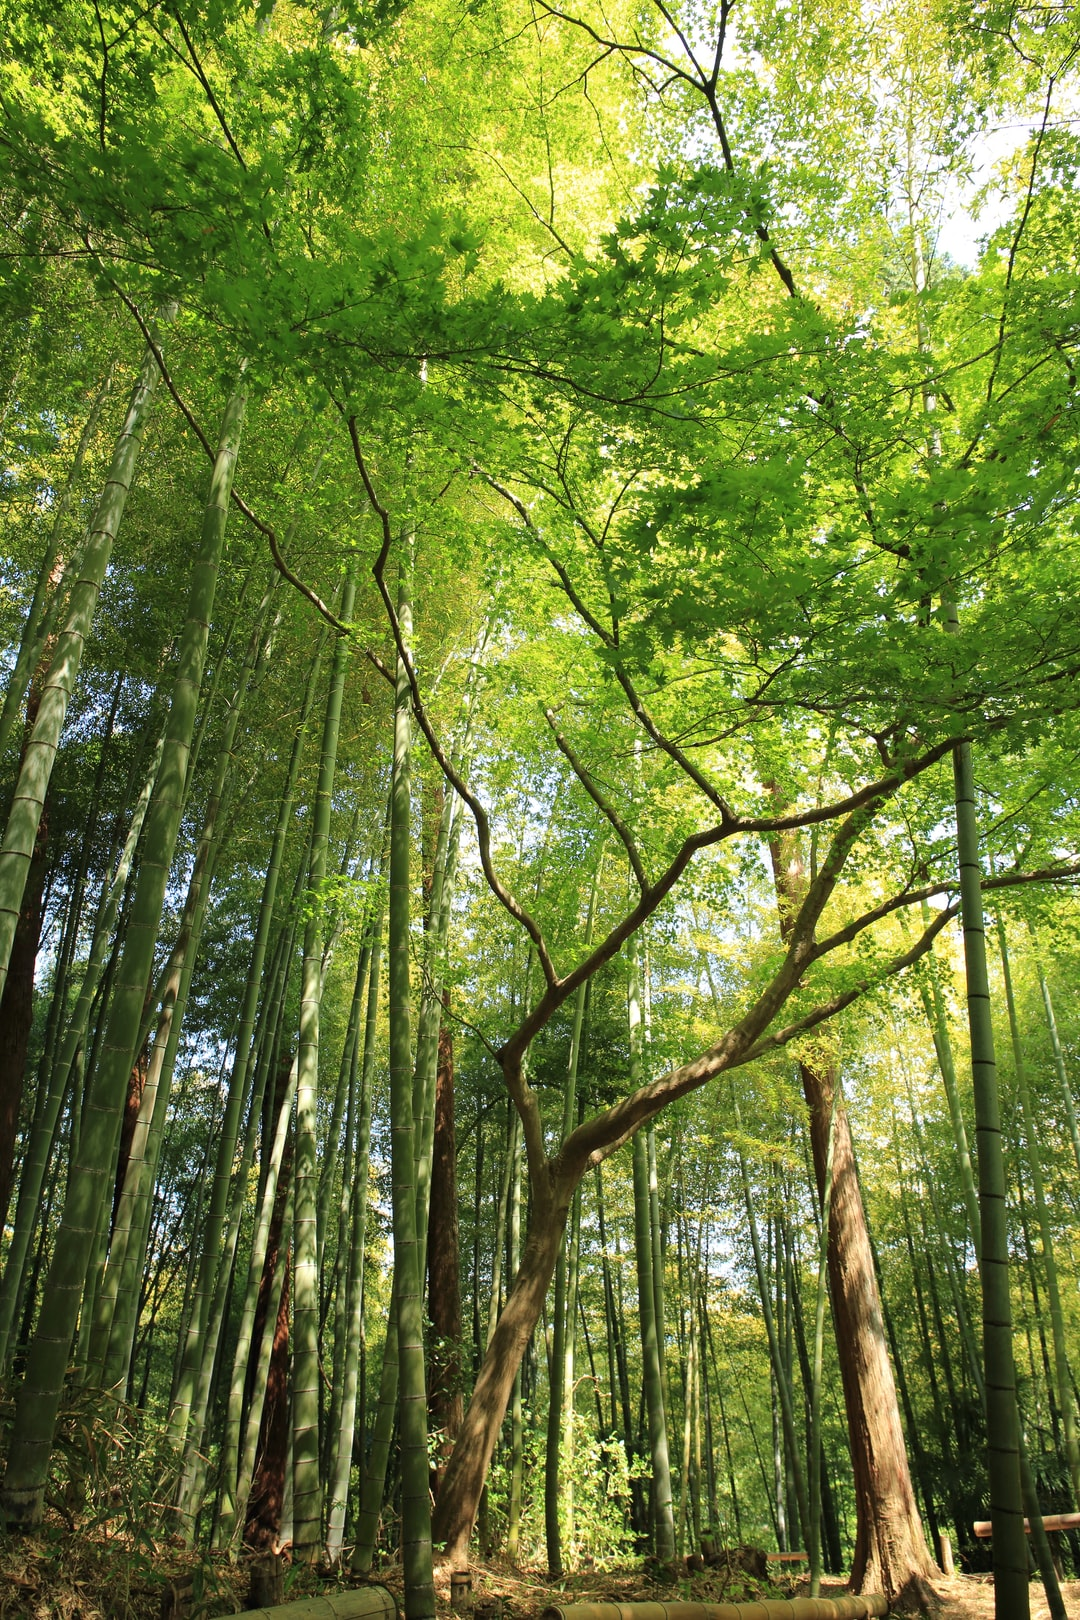 Bamboo and tree canopy